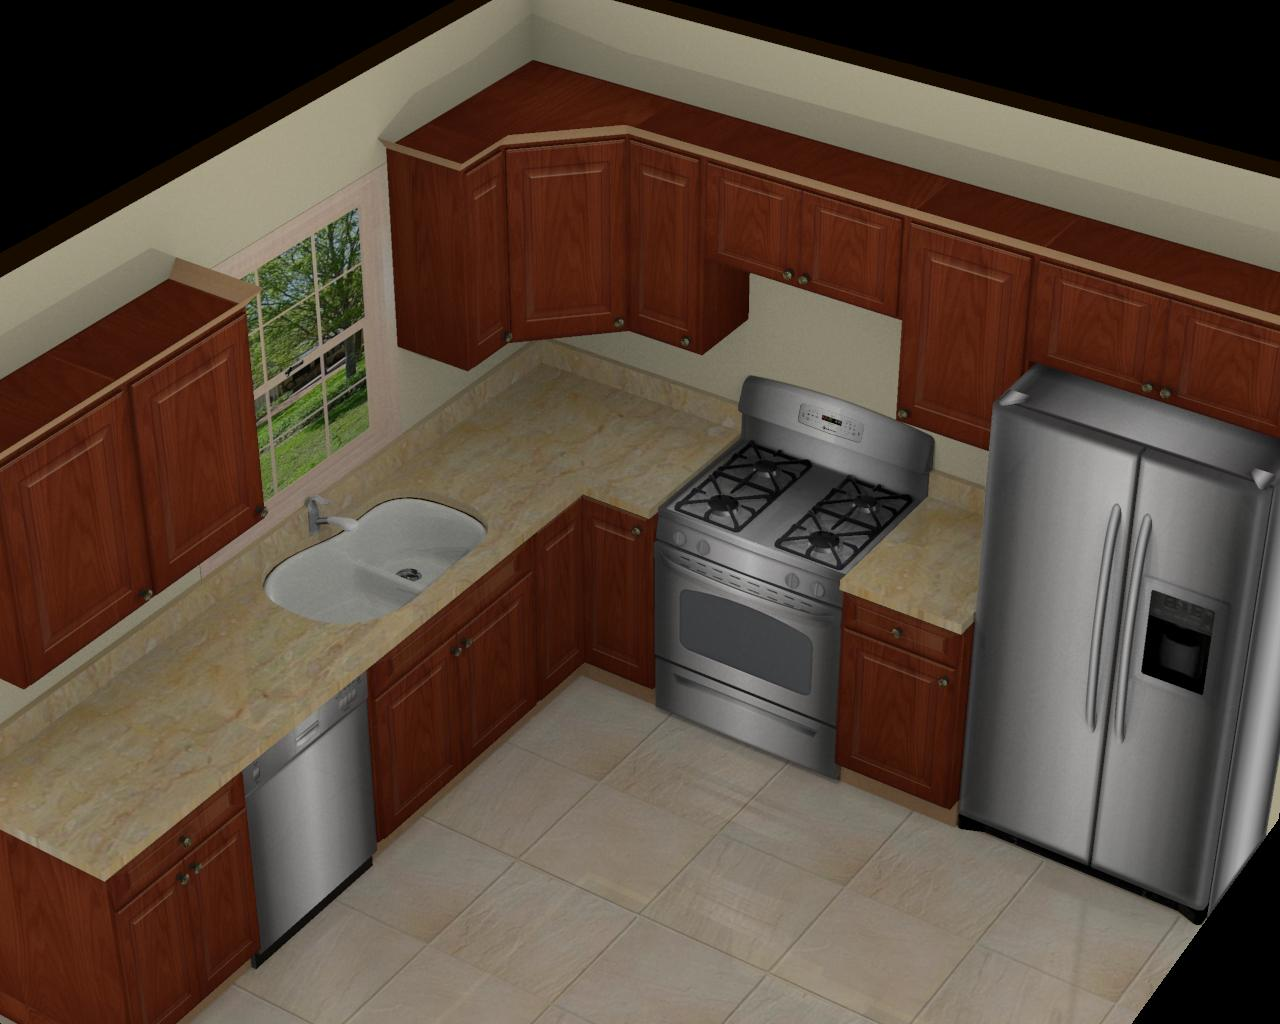 Pin 10x10 Kitchen Layout Image Search Results On Pinterest